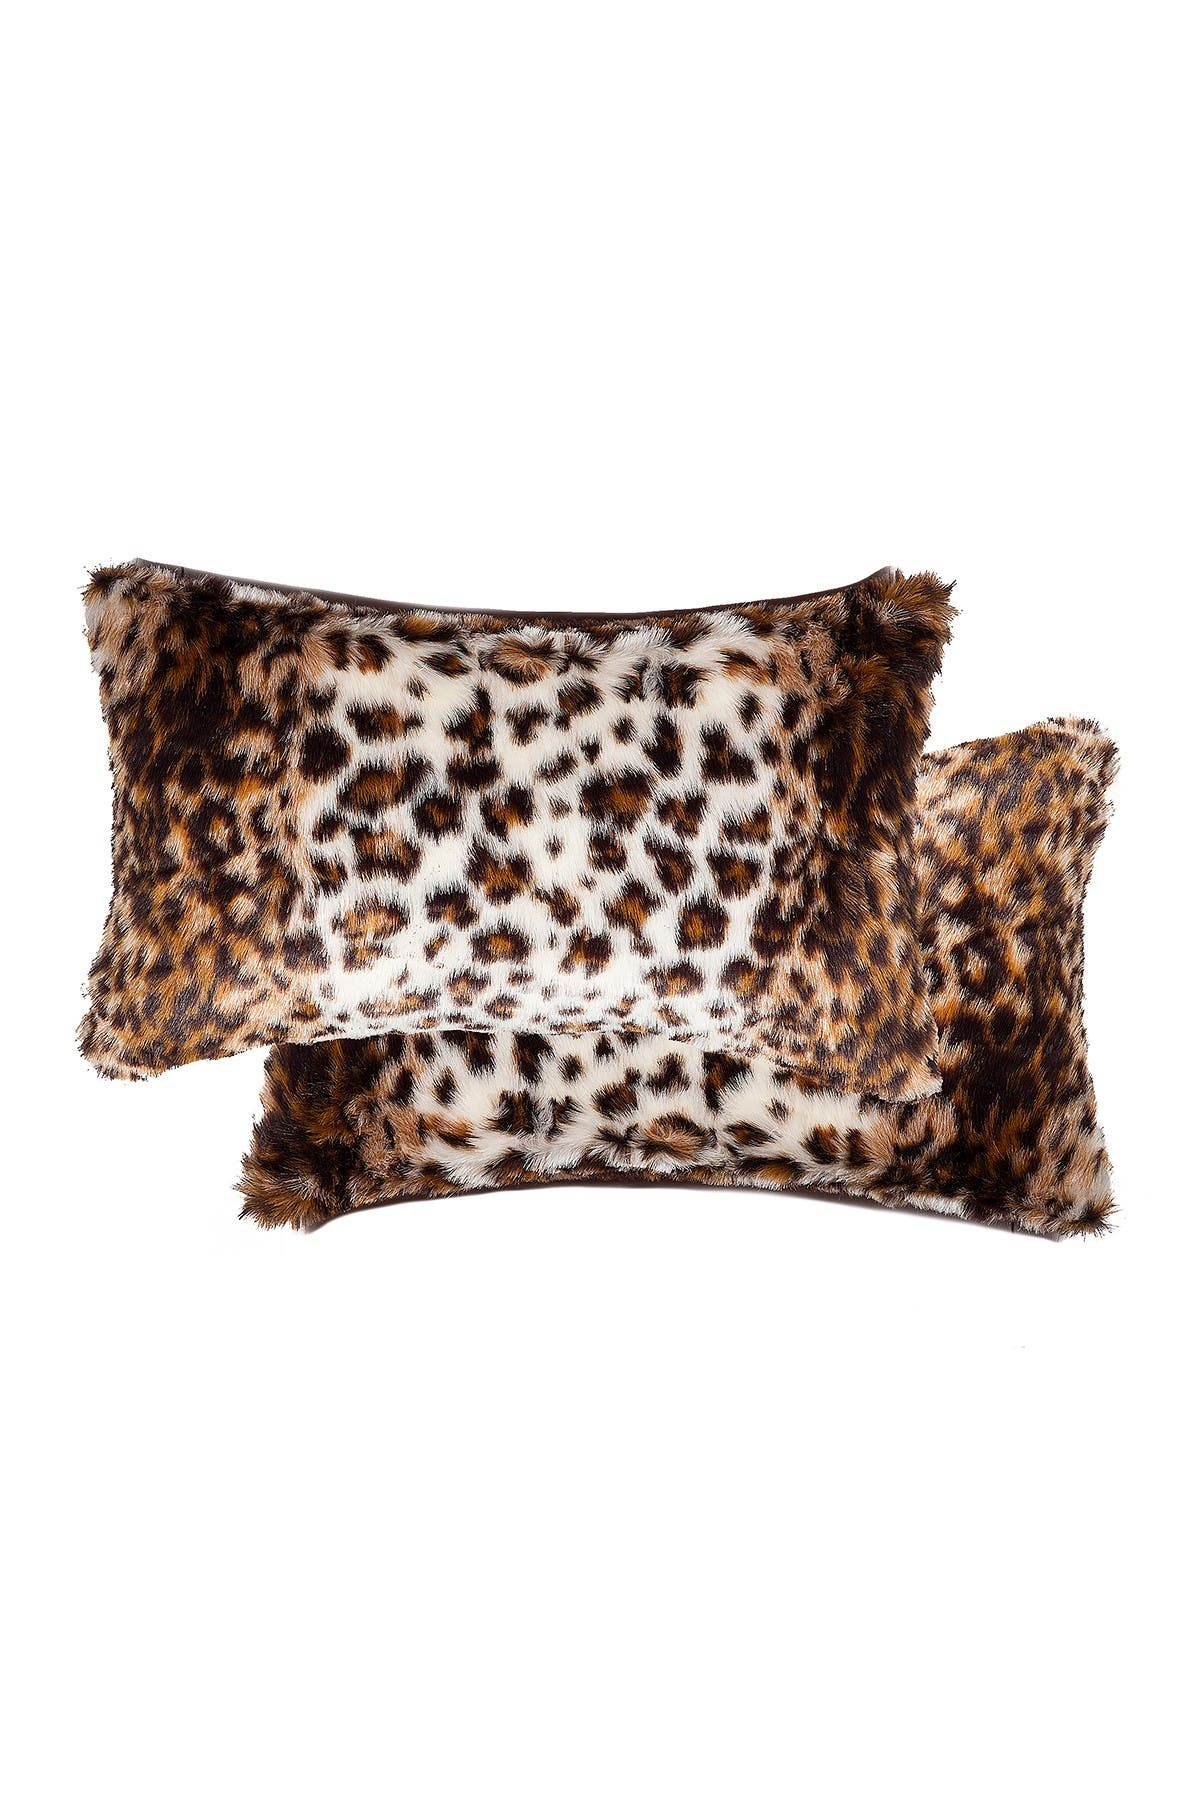 """Image of LUXE Belton Georgetown Lynx Faux Fur Pillows - Set of 2 - 12"""" x 20"""""""